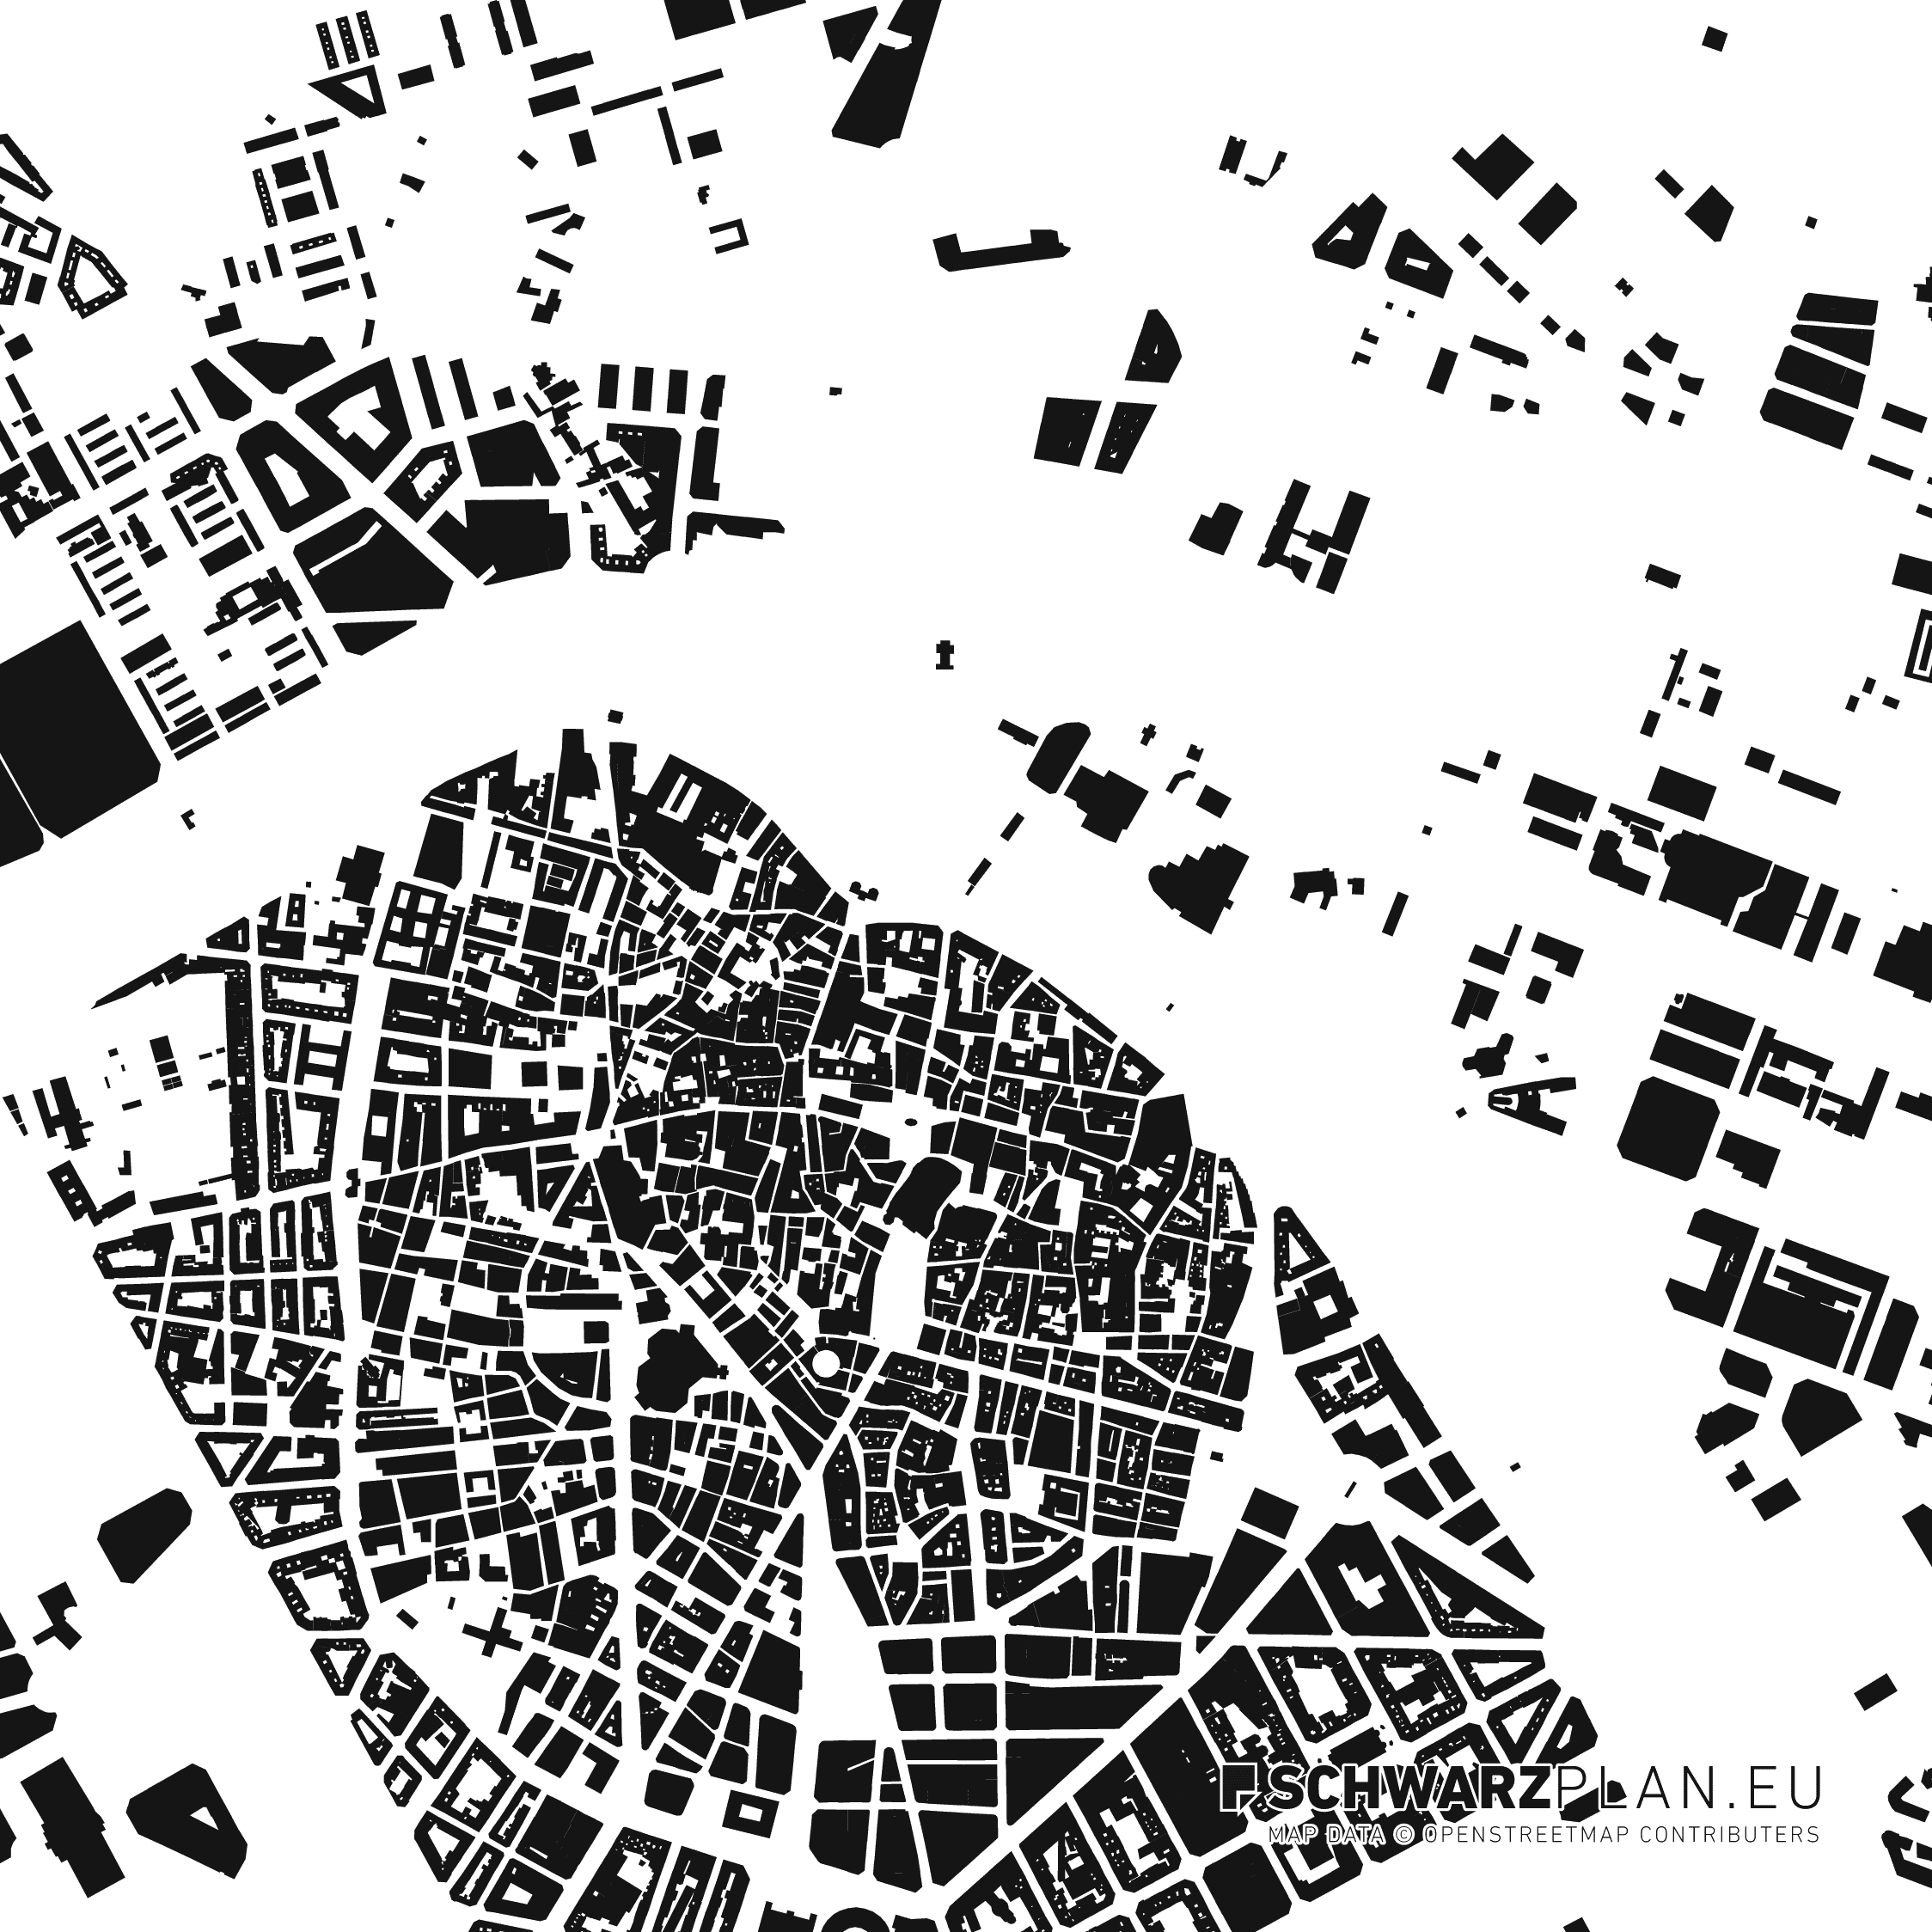 Figure ground plan of Valencia